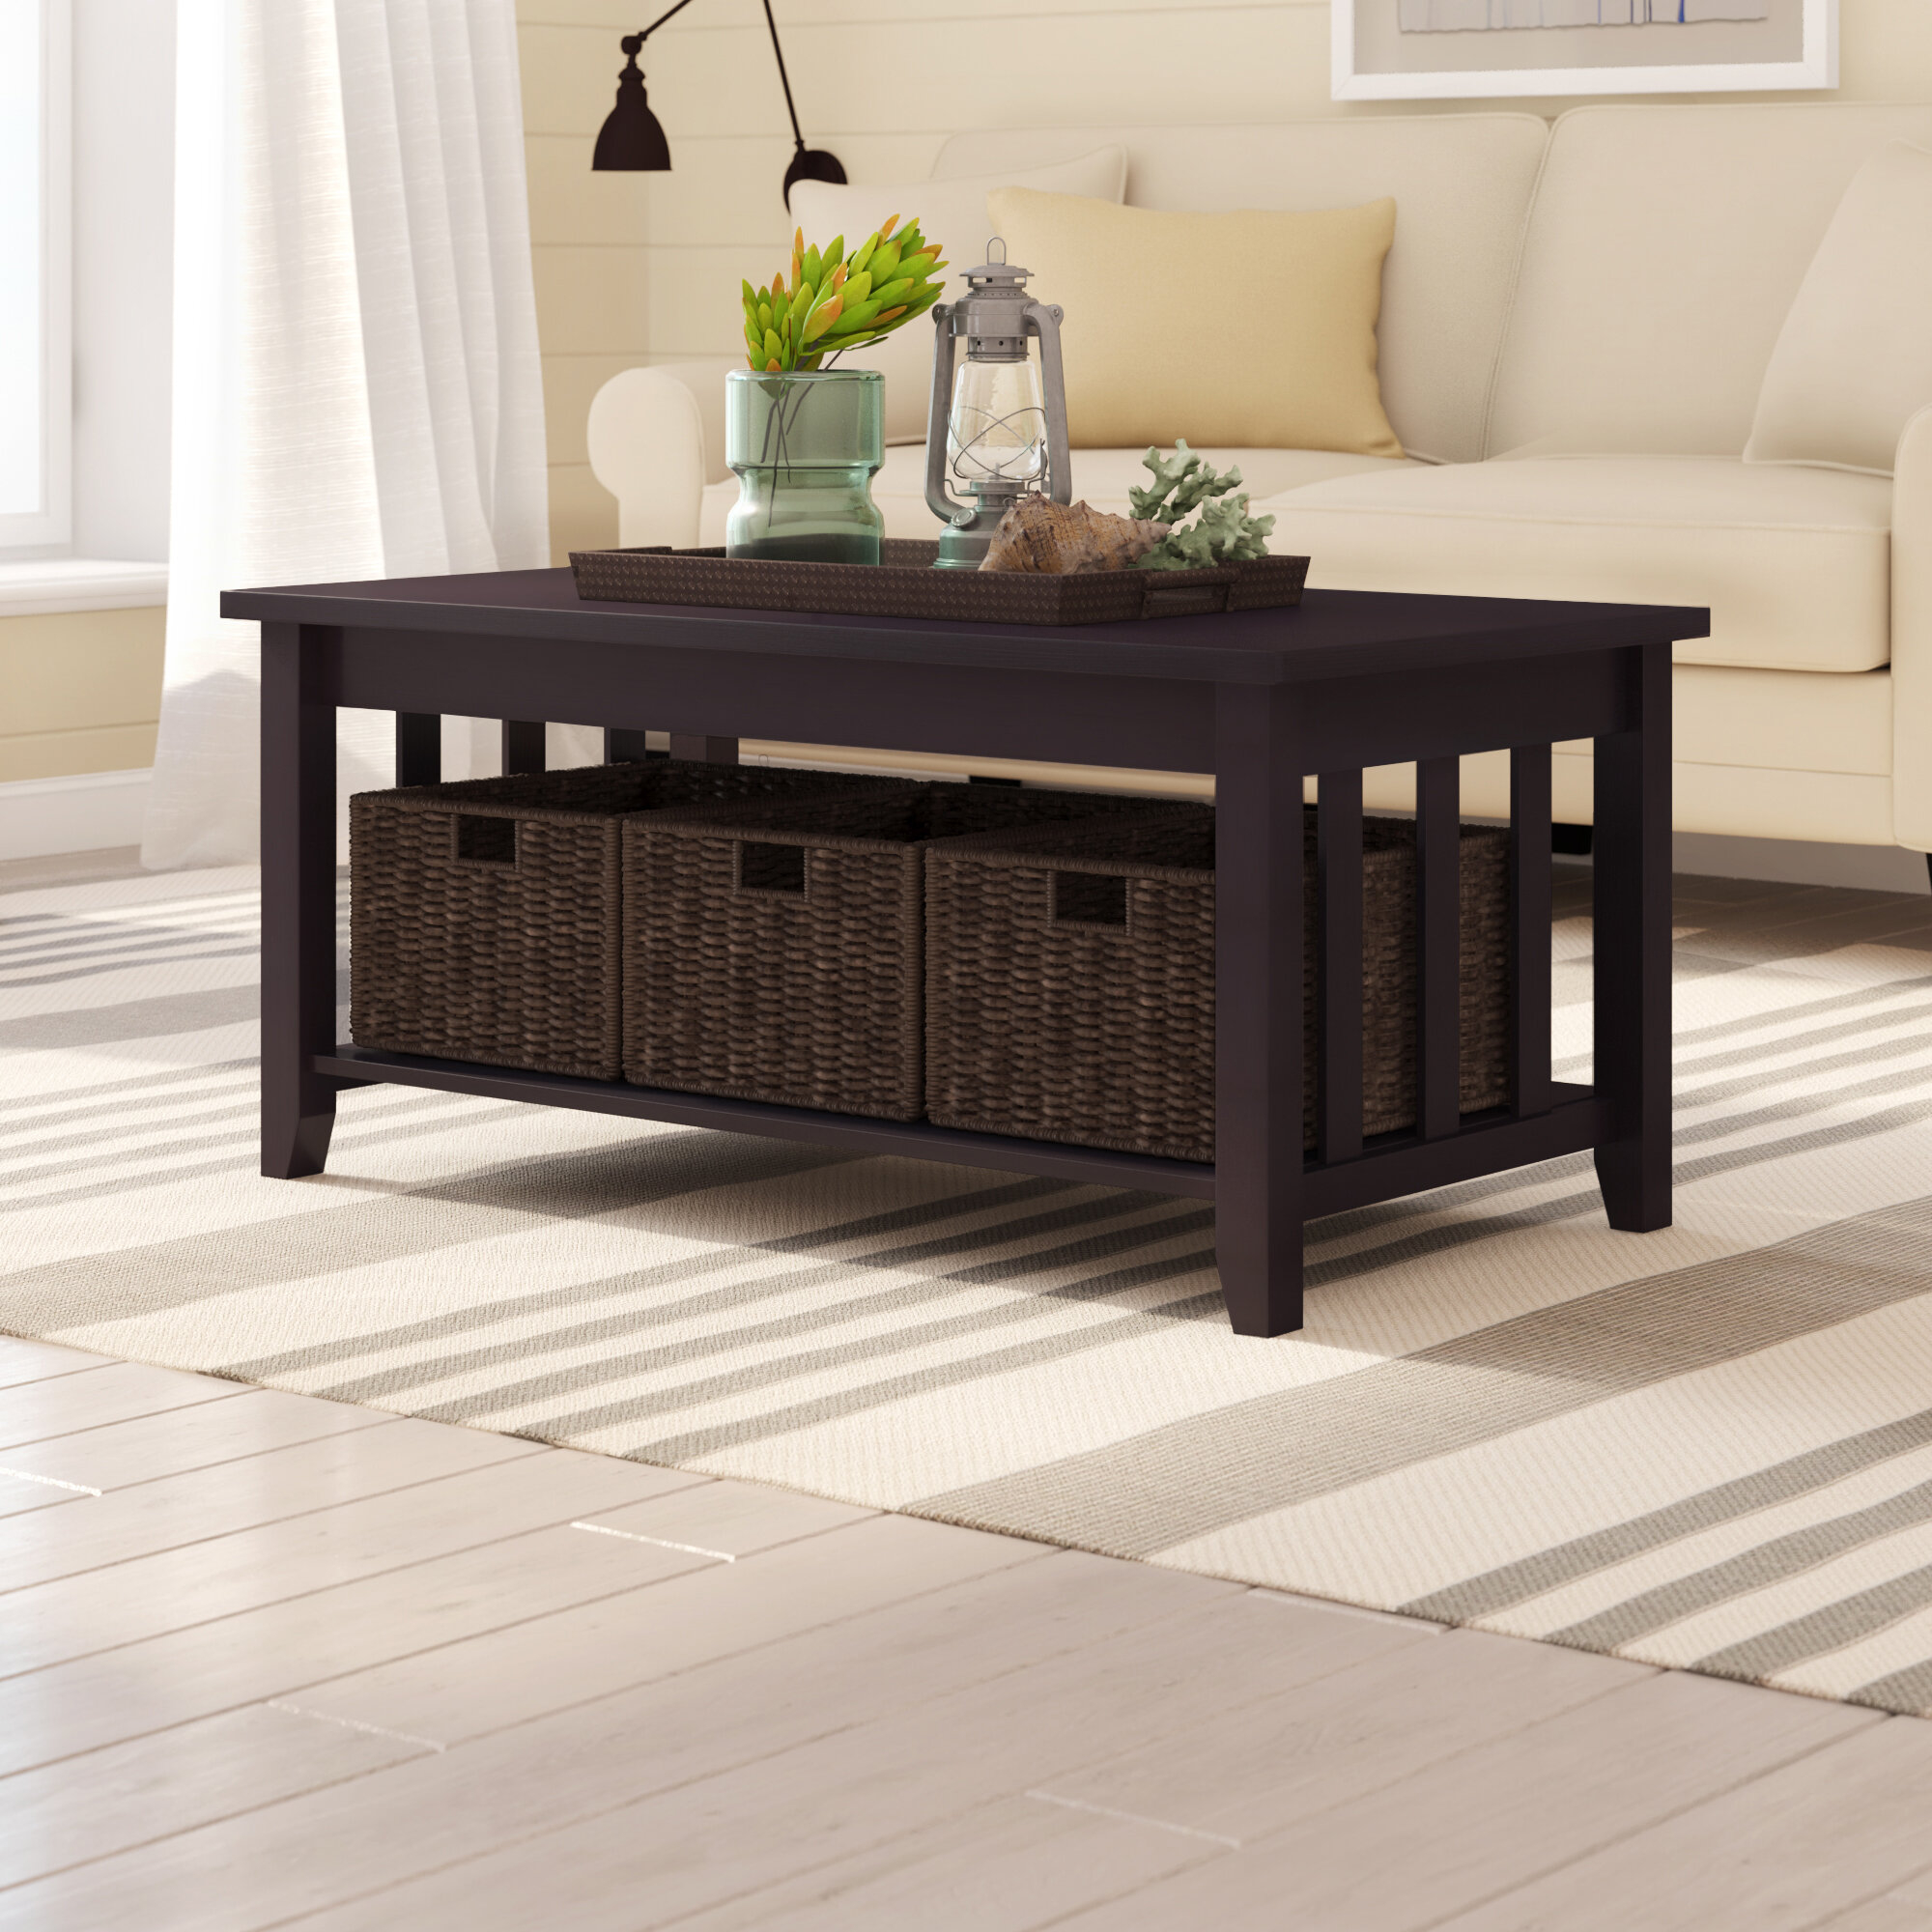 coffee table with storage baskets you